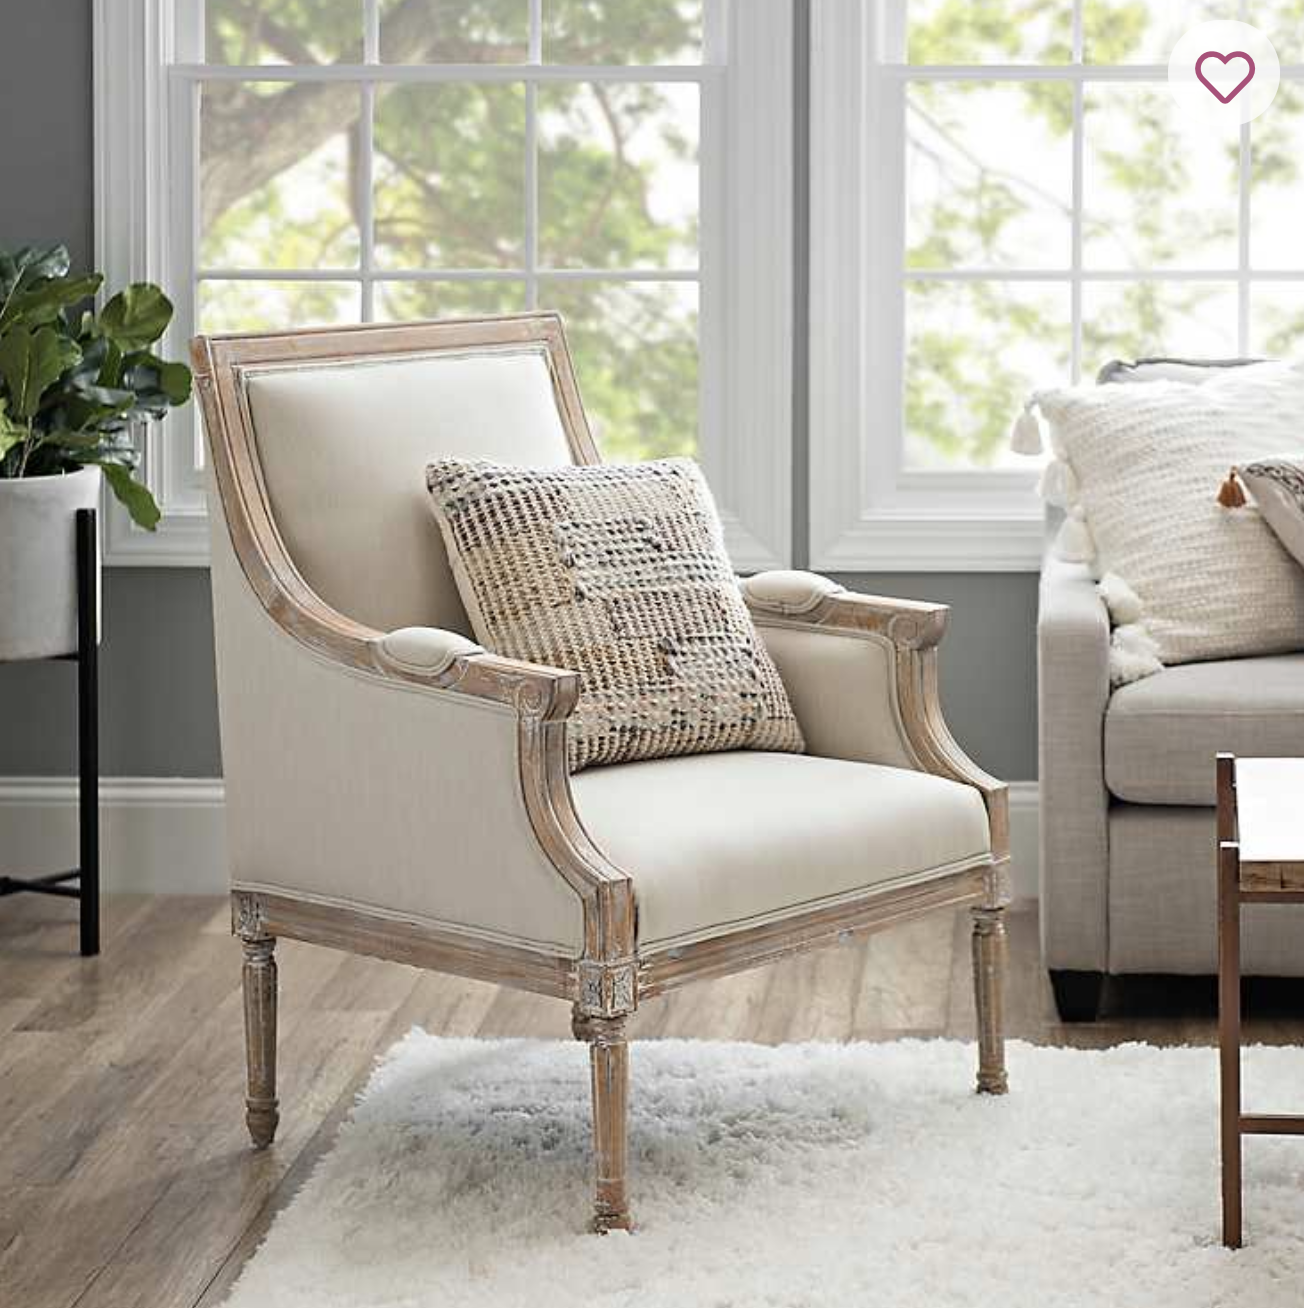 Accent-chair. +110 Unique Living Room Furniture Pieces That Amaze Everyone